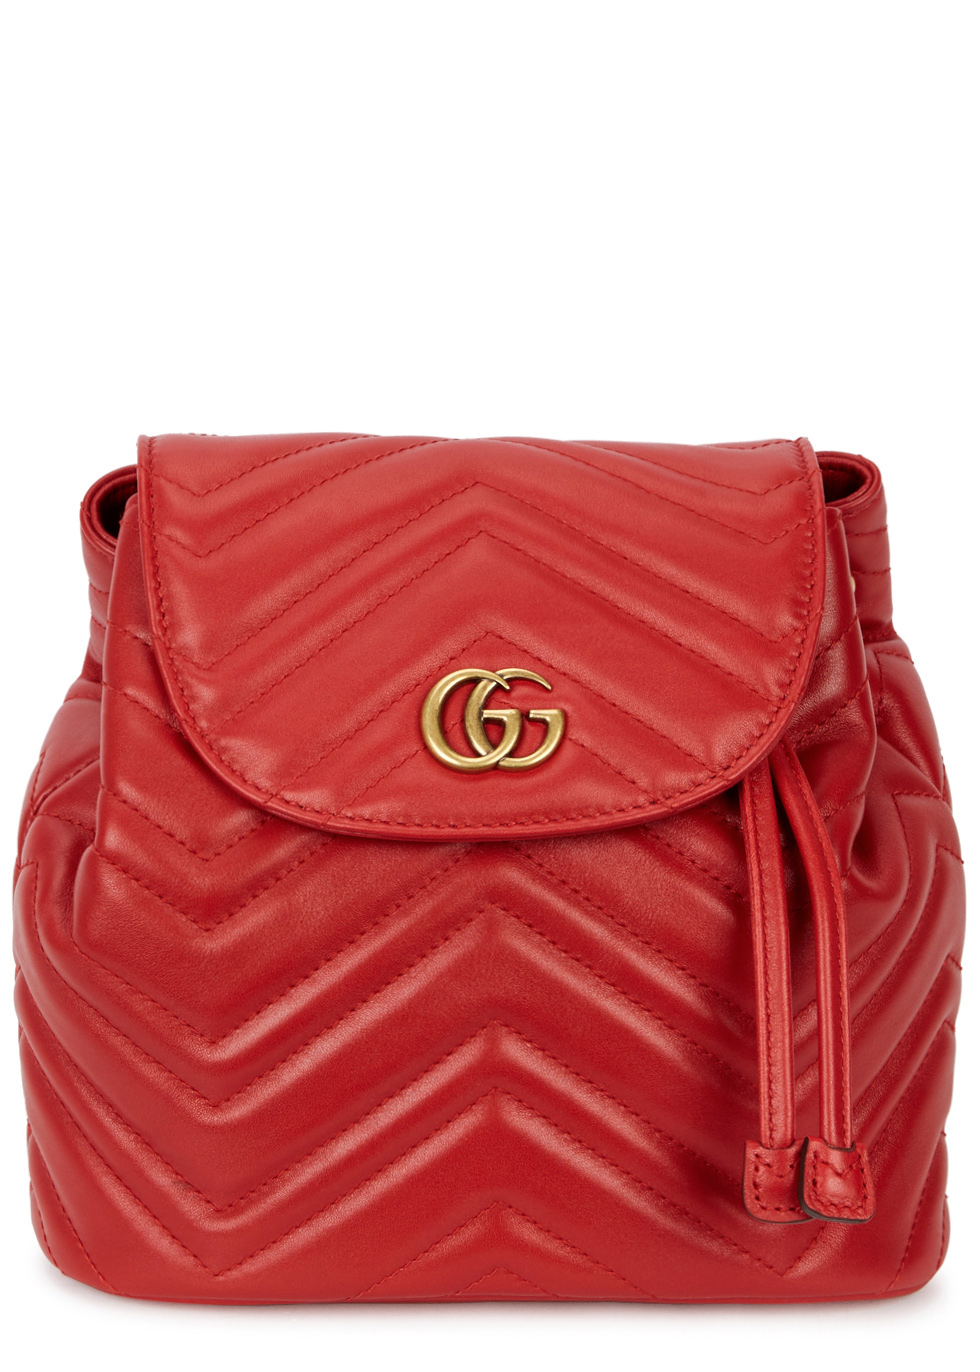 GG MARMONT RED LEATHER BACKPACK